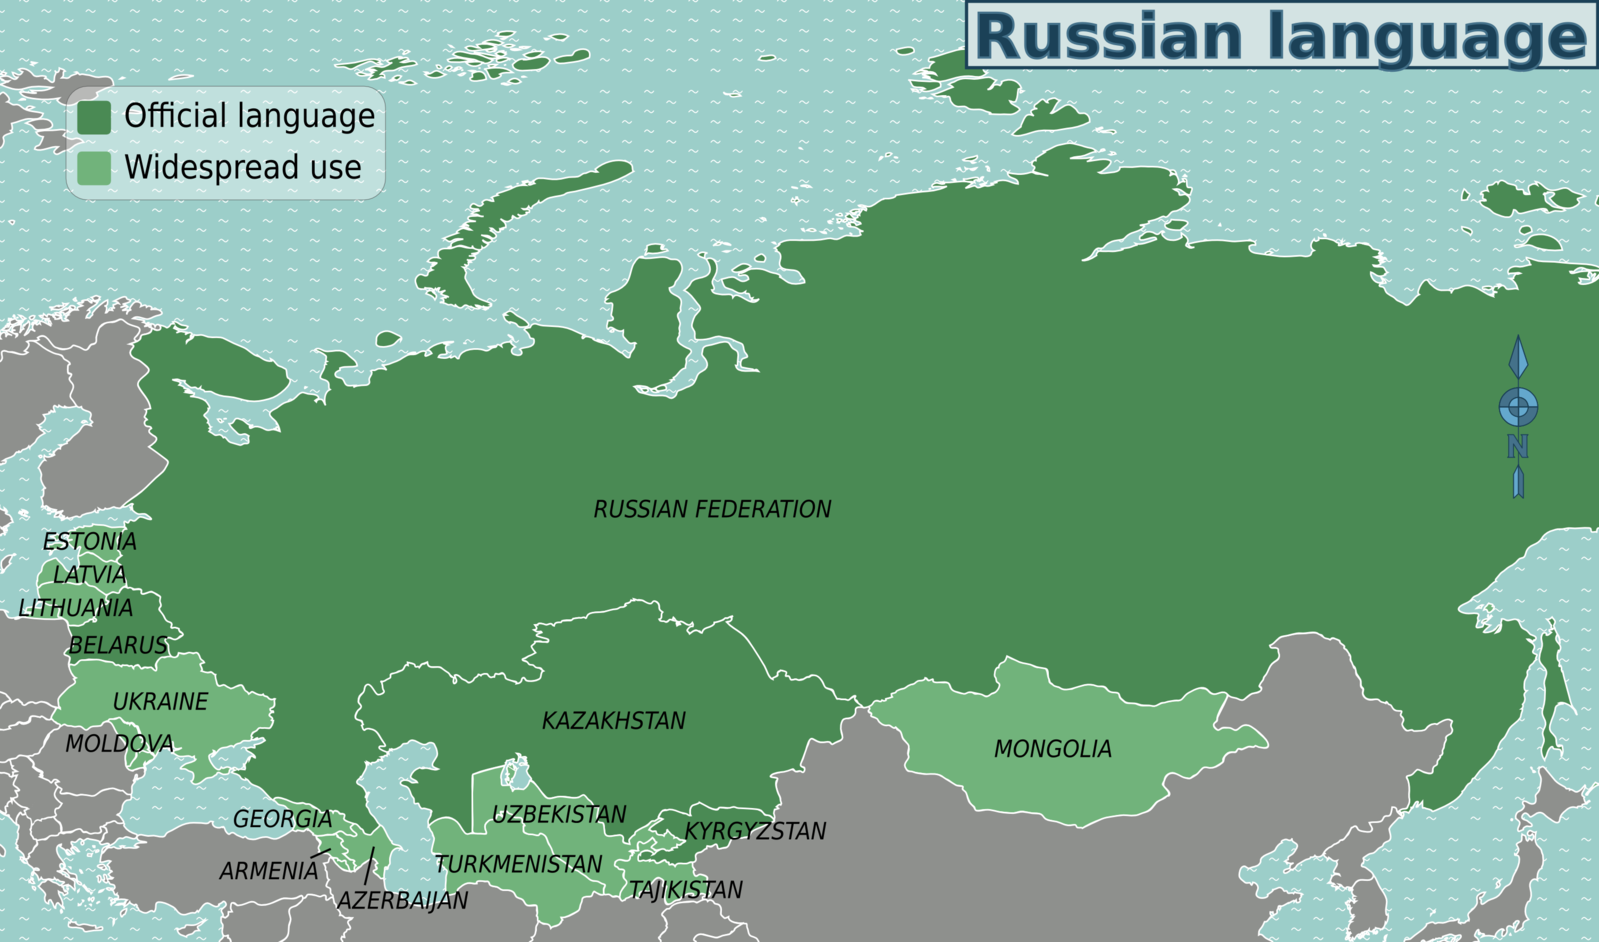 russian language Russian language study is a foray into careers as diverse as speech pathology, comparative literature, and international trade, and it has the potential to open doors to regions of the world you may never have considered before.